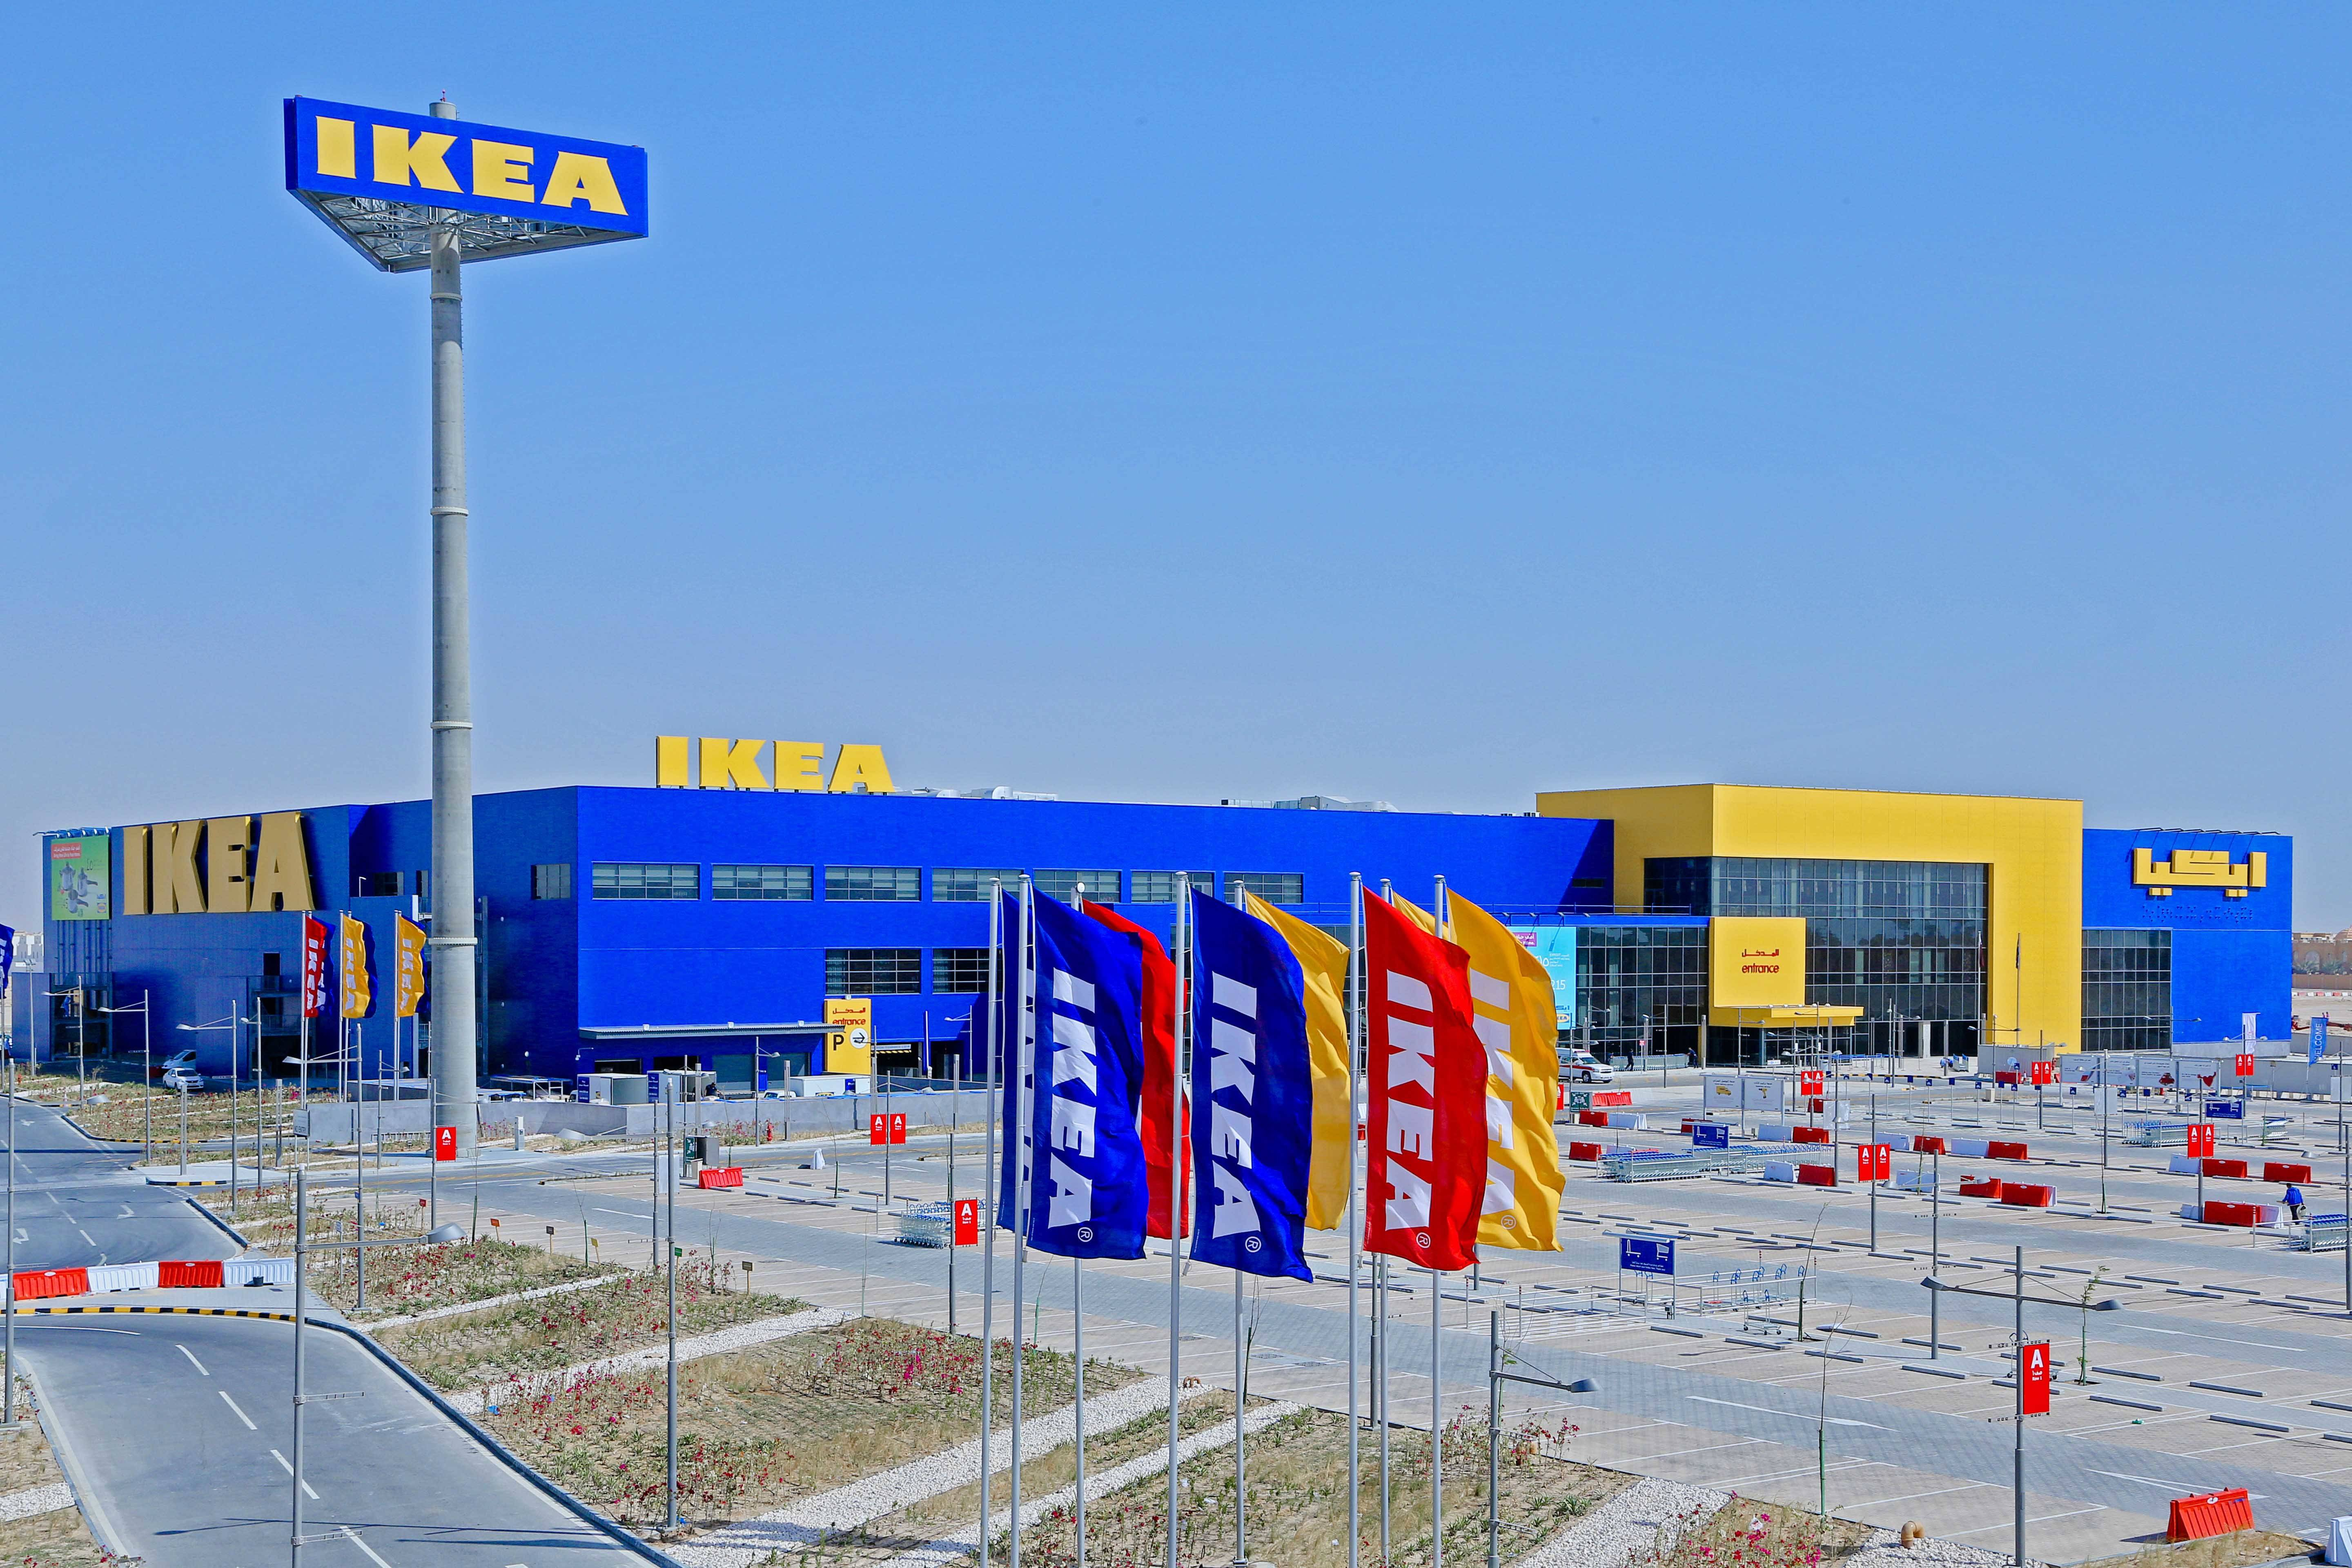 Ikea Plans Dubai Distribution Hub Amid Gulf Expansion